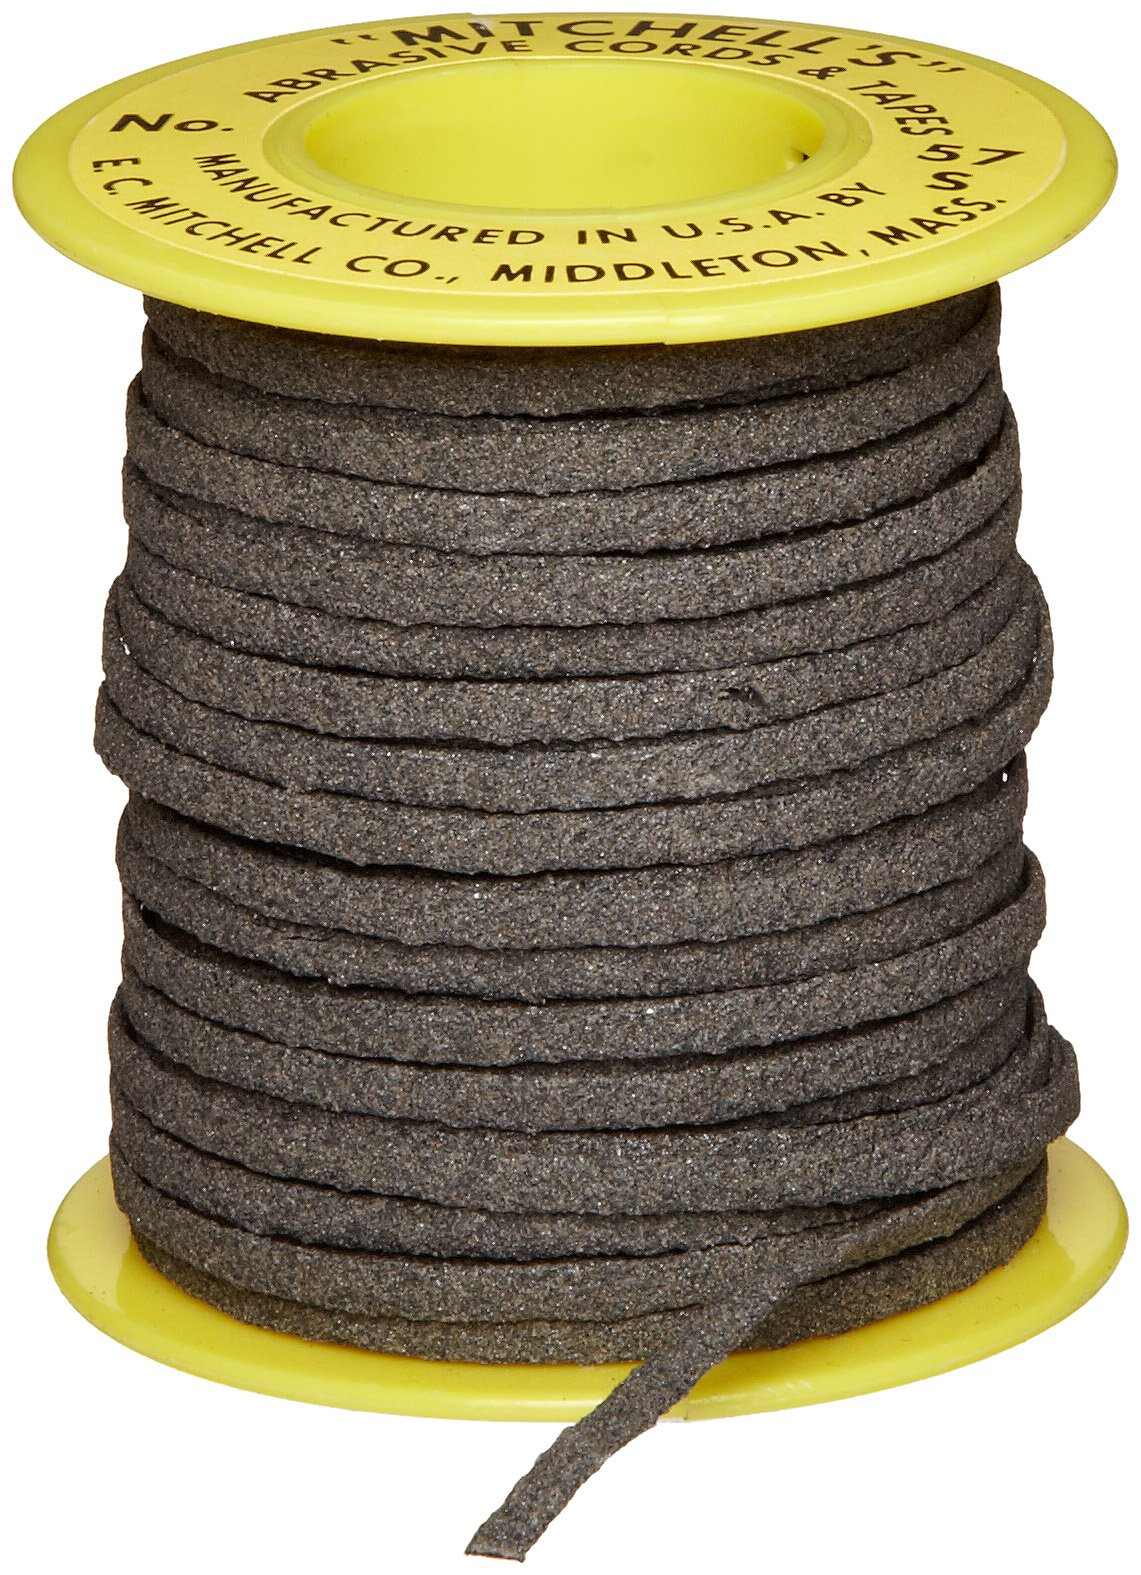 Mitchell Abrasives 57-S Flat Abrasive Tape, Silicon Carbide 150 Grit 1/8'' Wide x 50 Feet